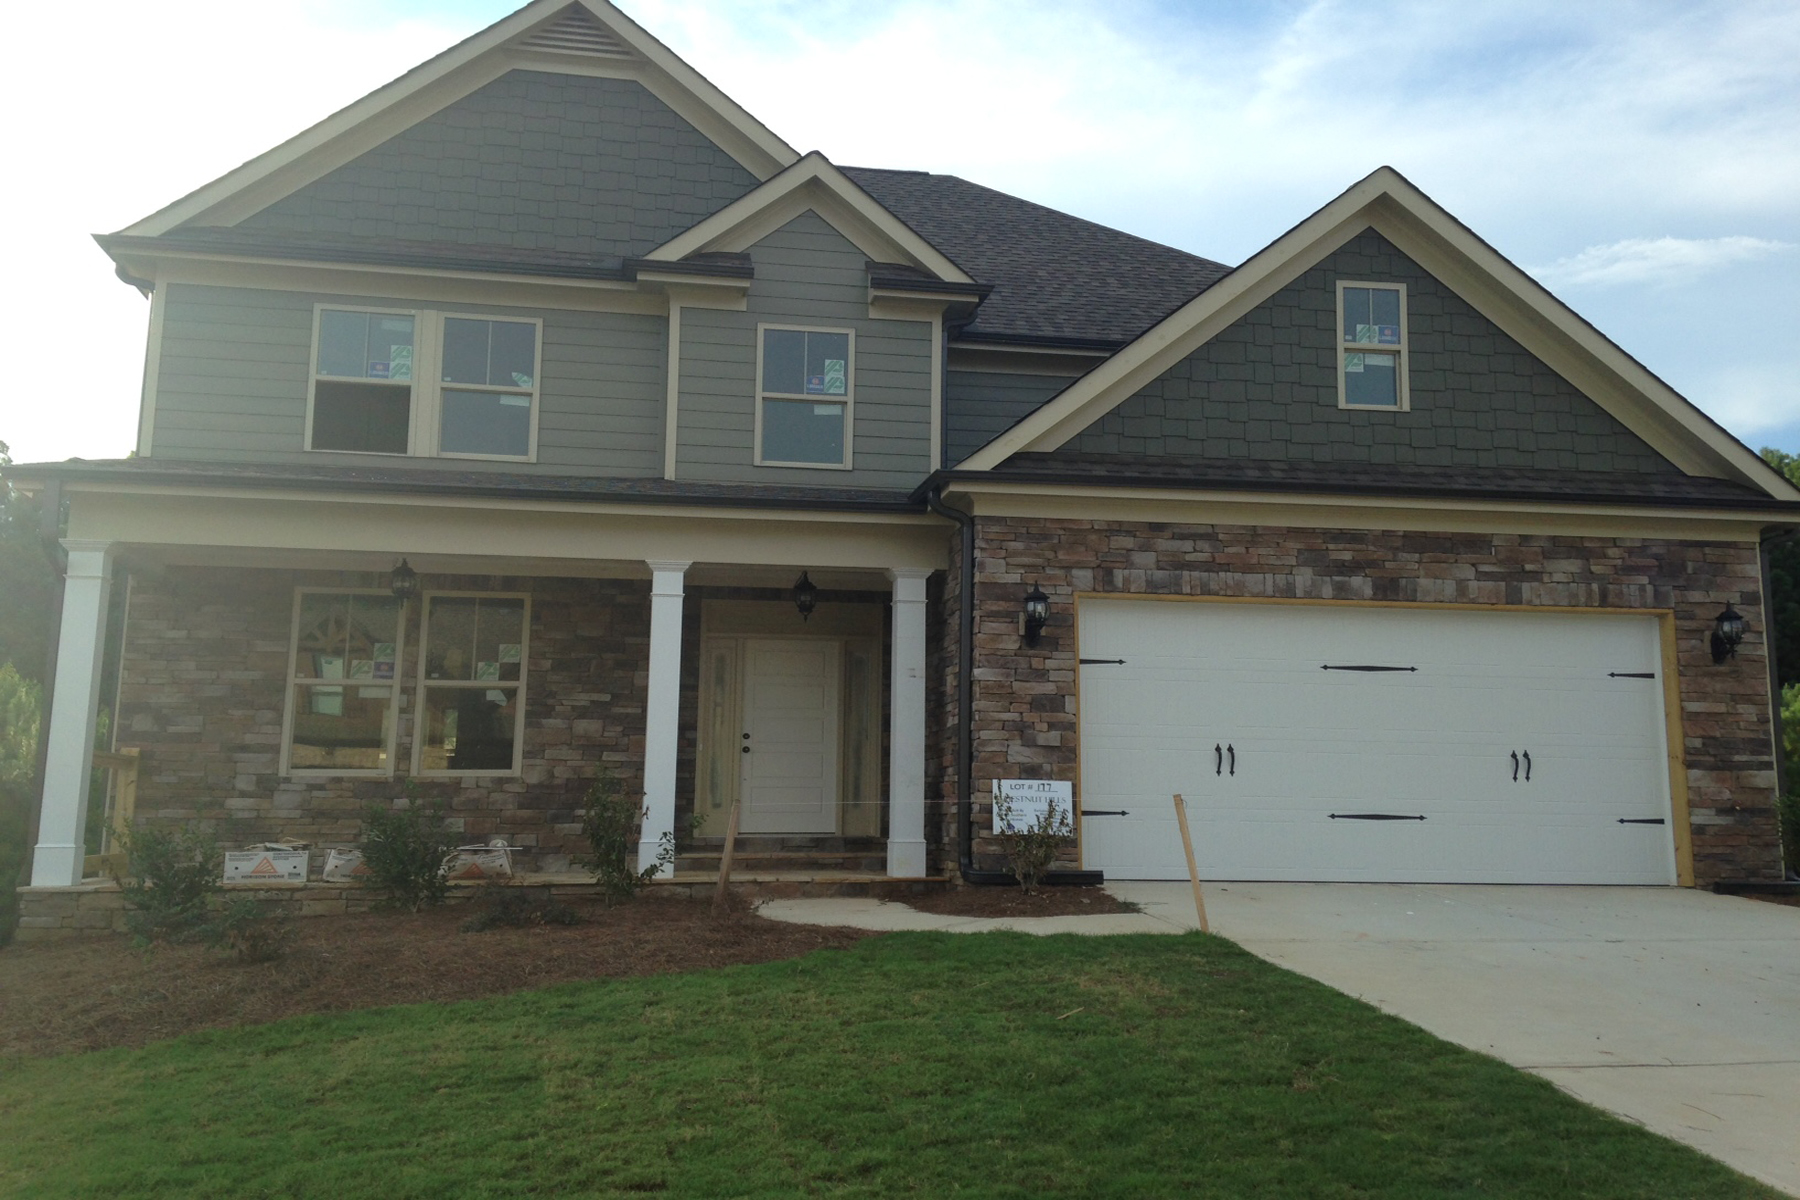 Single Family Home for Active at Beautiful New Construction 496 Crimson Drive Dallas, Georgia 30132 United States